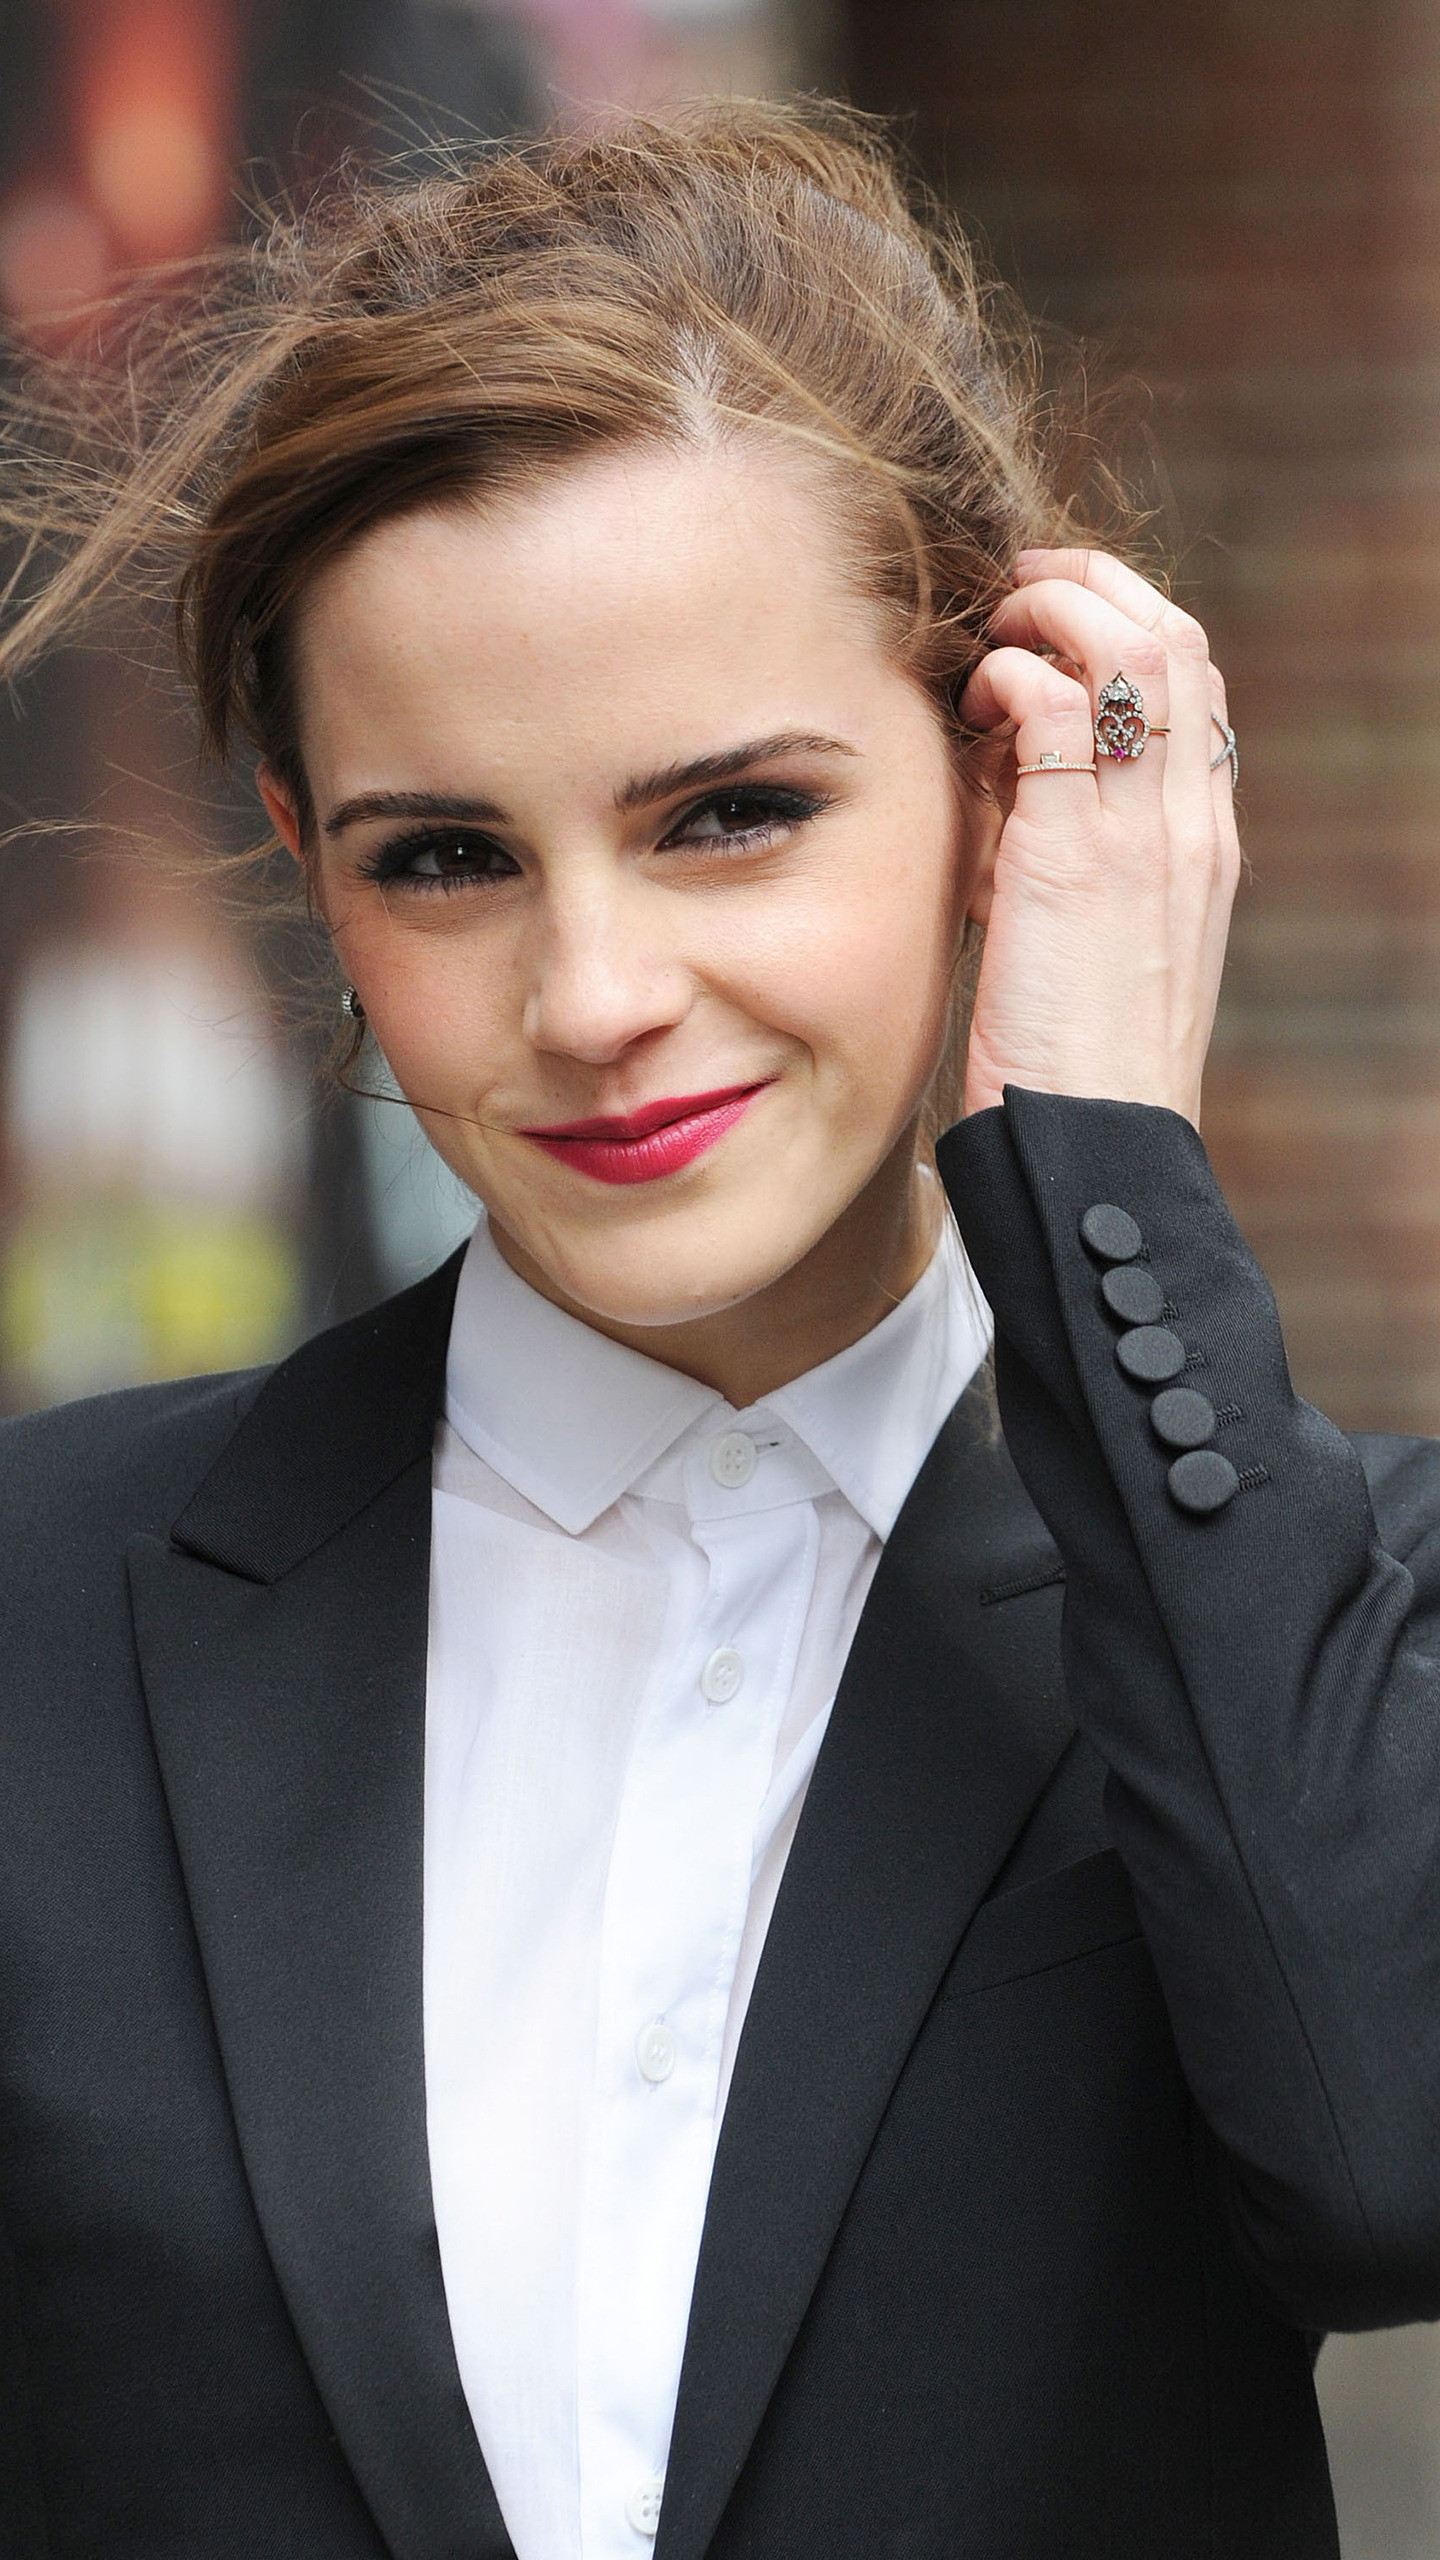 1440x2560 Description for Emma Watson Wallpaper Hd Iphone